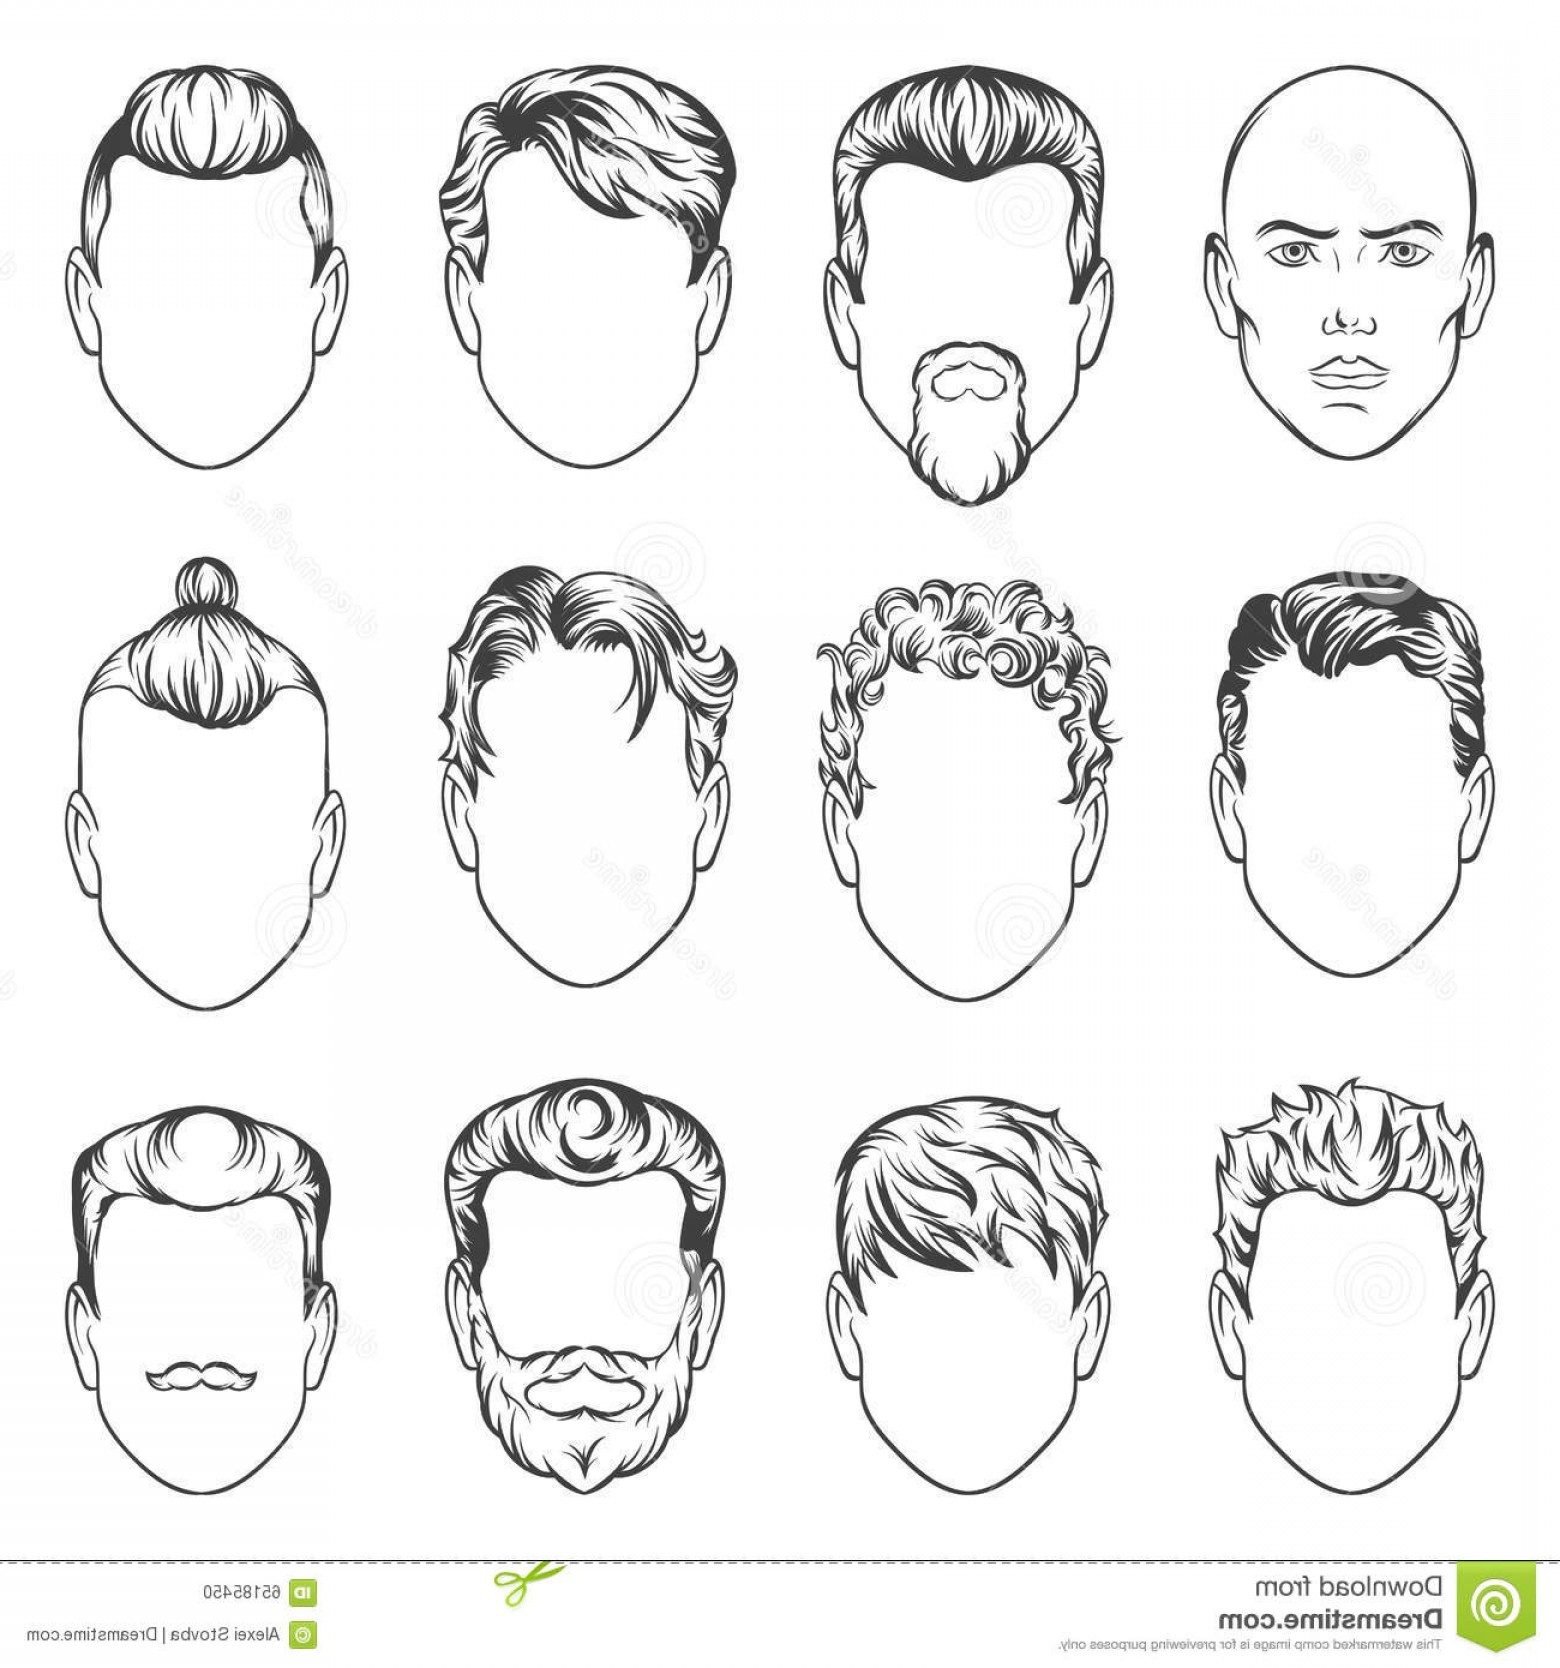 Short Men's Hair Vector: Stock Illustration Men Hairstyles Vector Illustration Hair Set Image